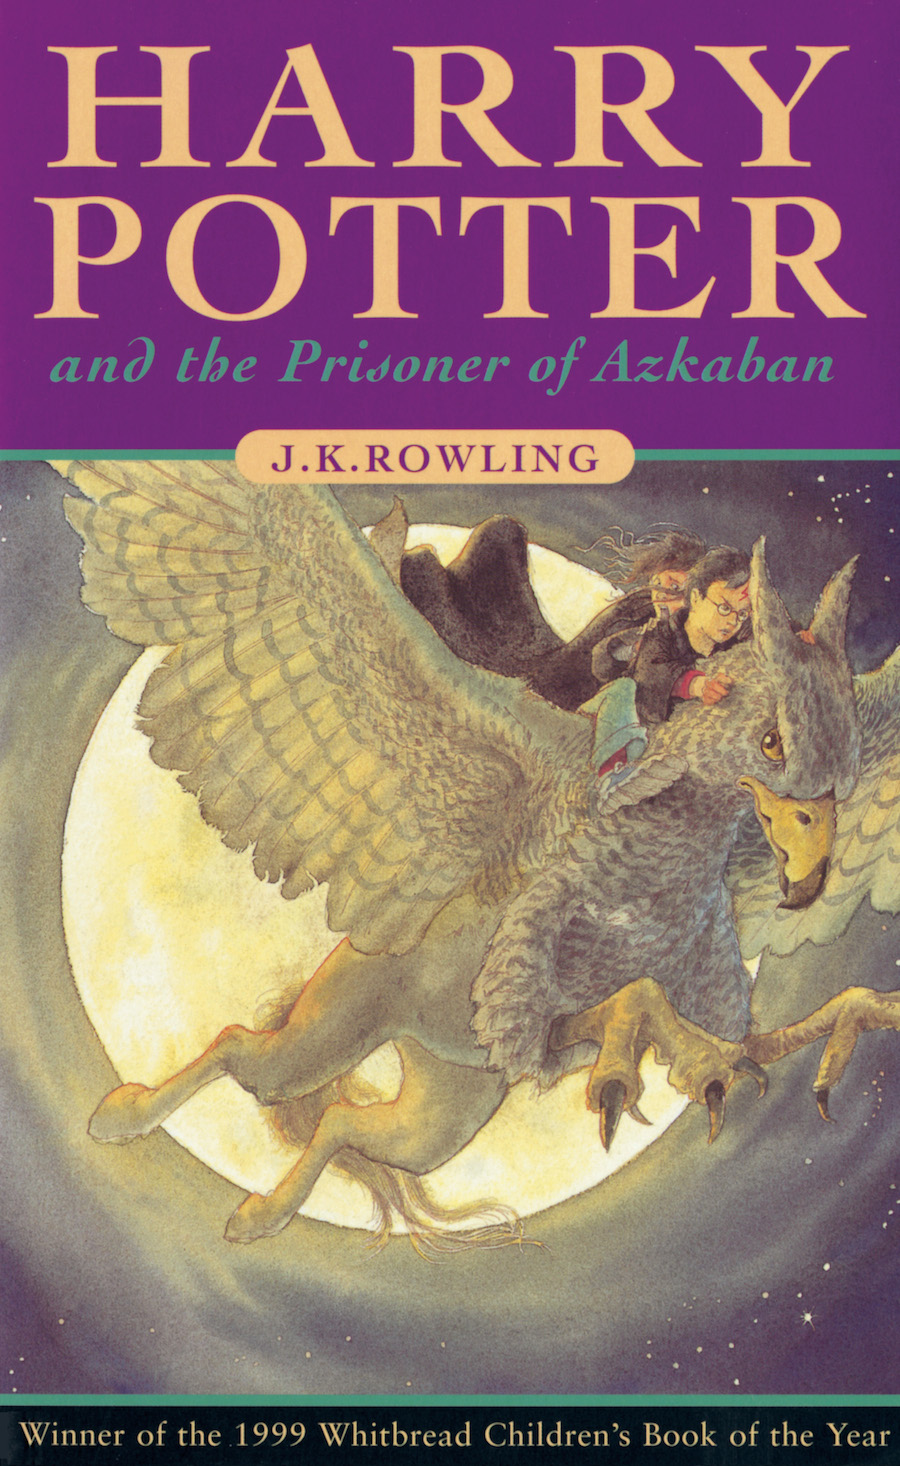 Harry Potter and the Prisoner of Azkaban | JK Rowling (Food Reference List)